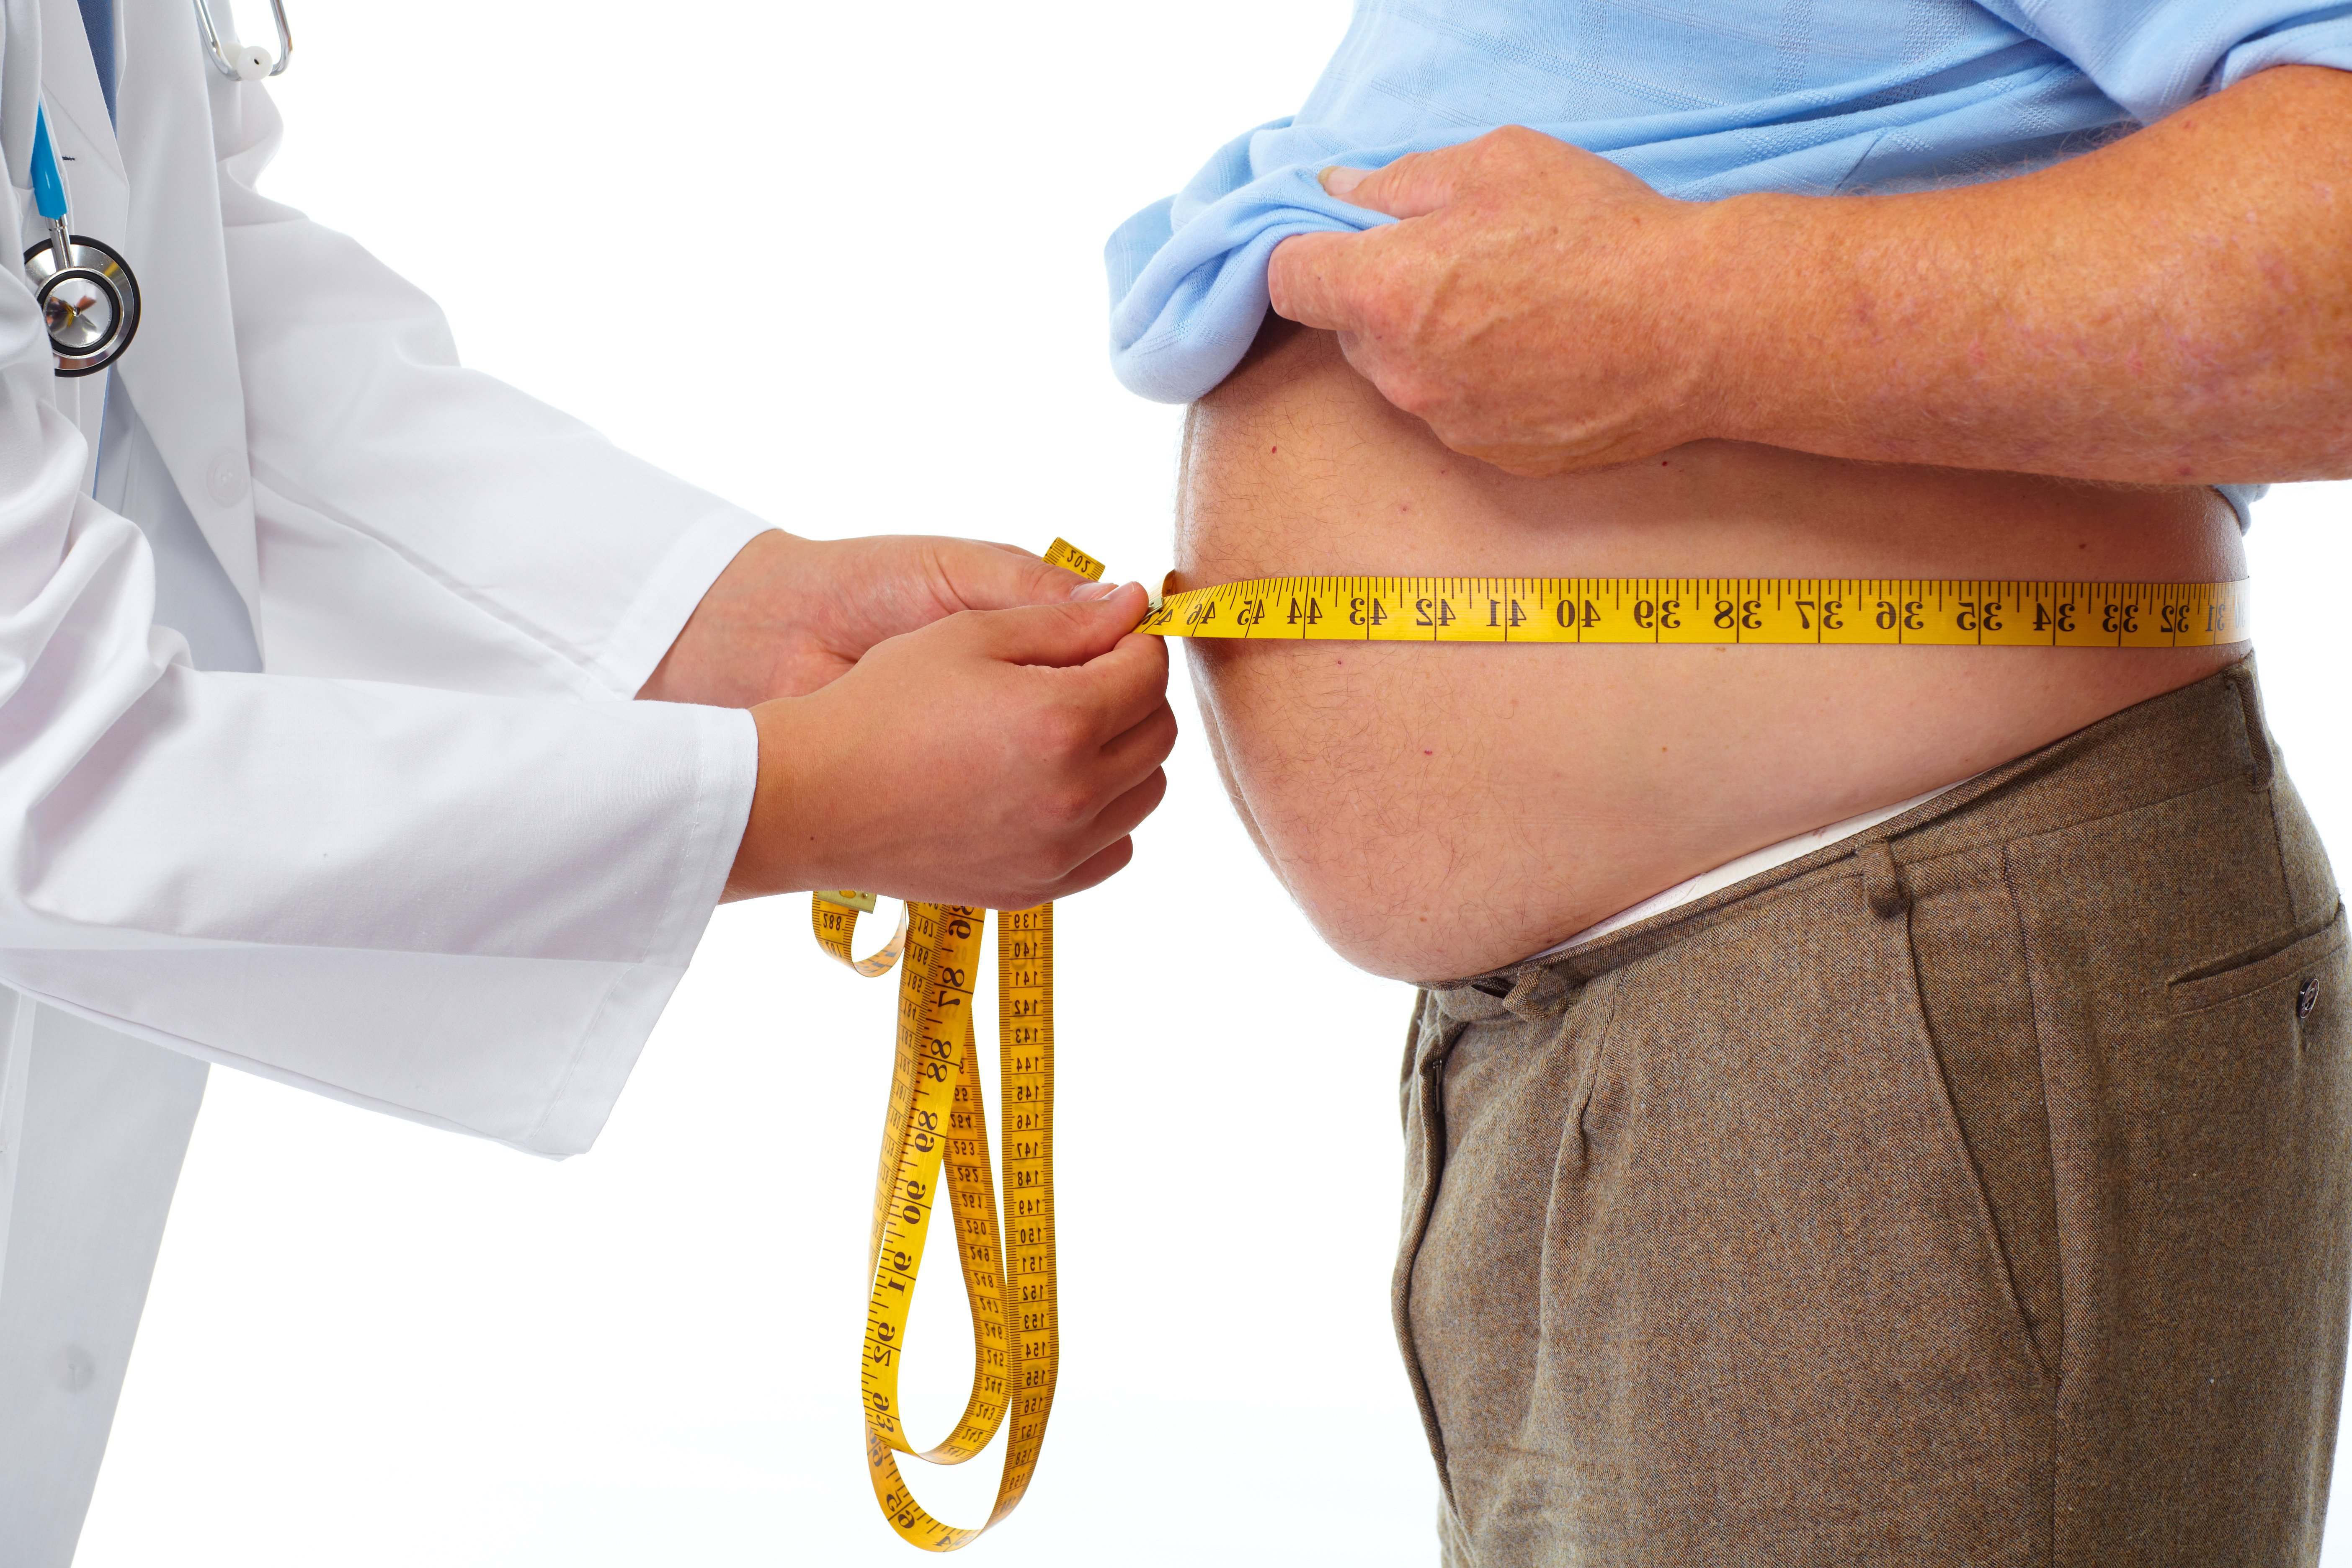 fat belly is measured by the doctor with measuring tape